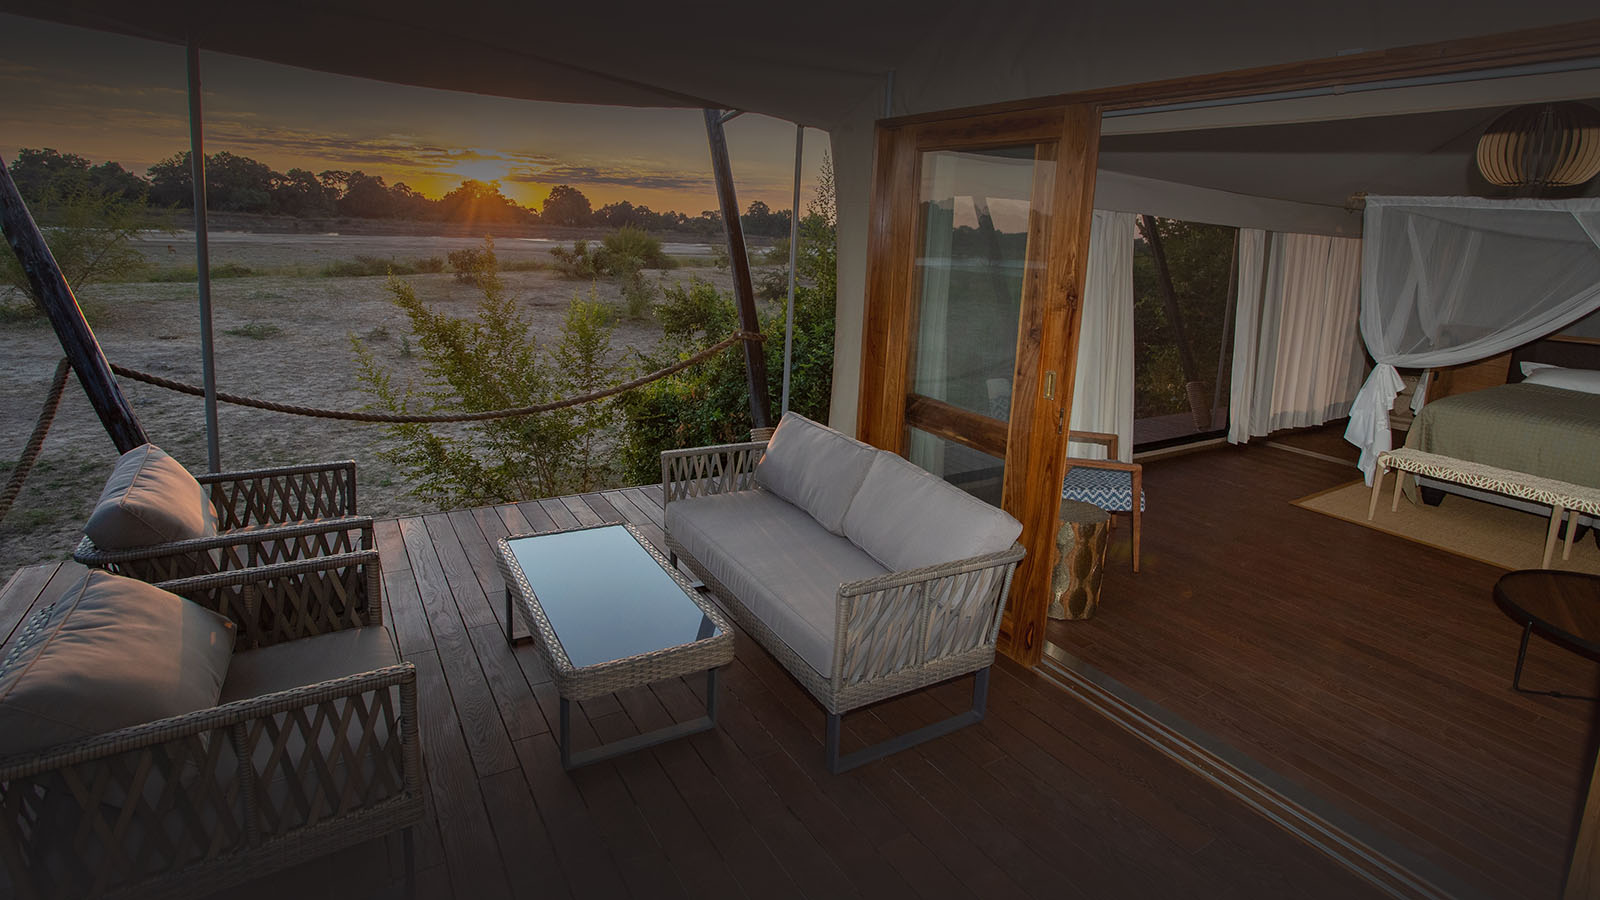 chikunto-lodge-zambia-in-style-safari-packages-lodges-luxury-tents-south-luangwa-room-interior